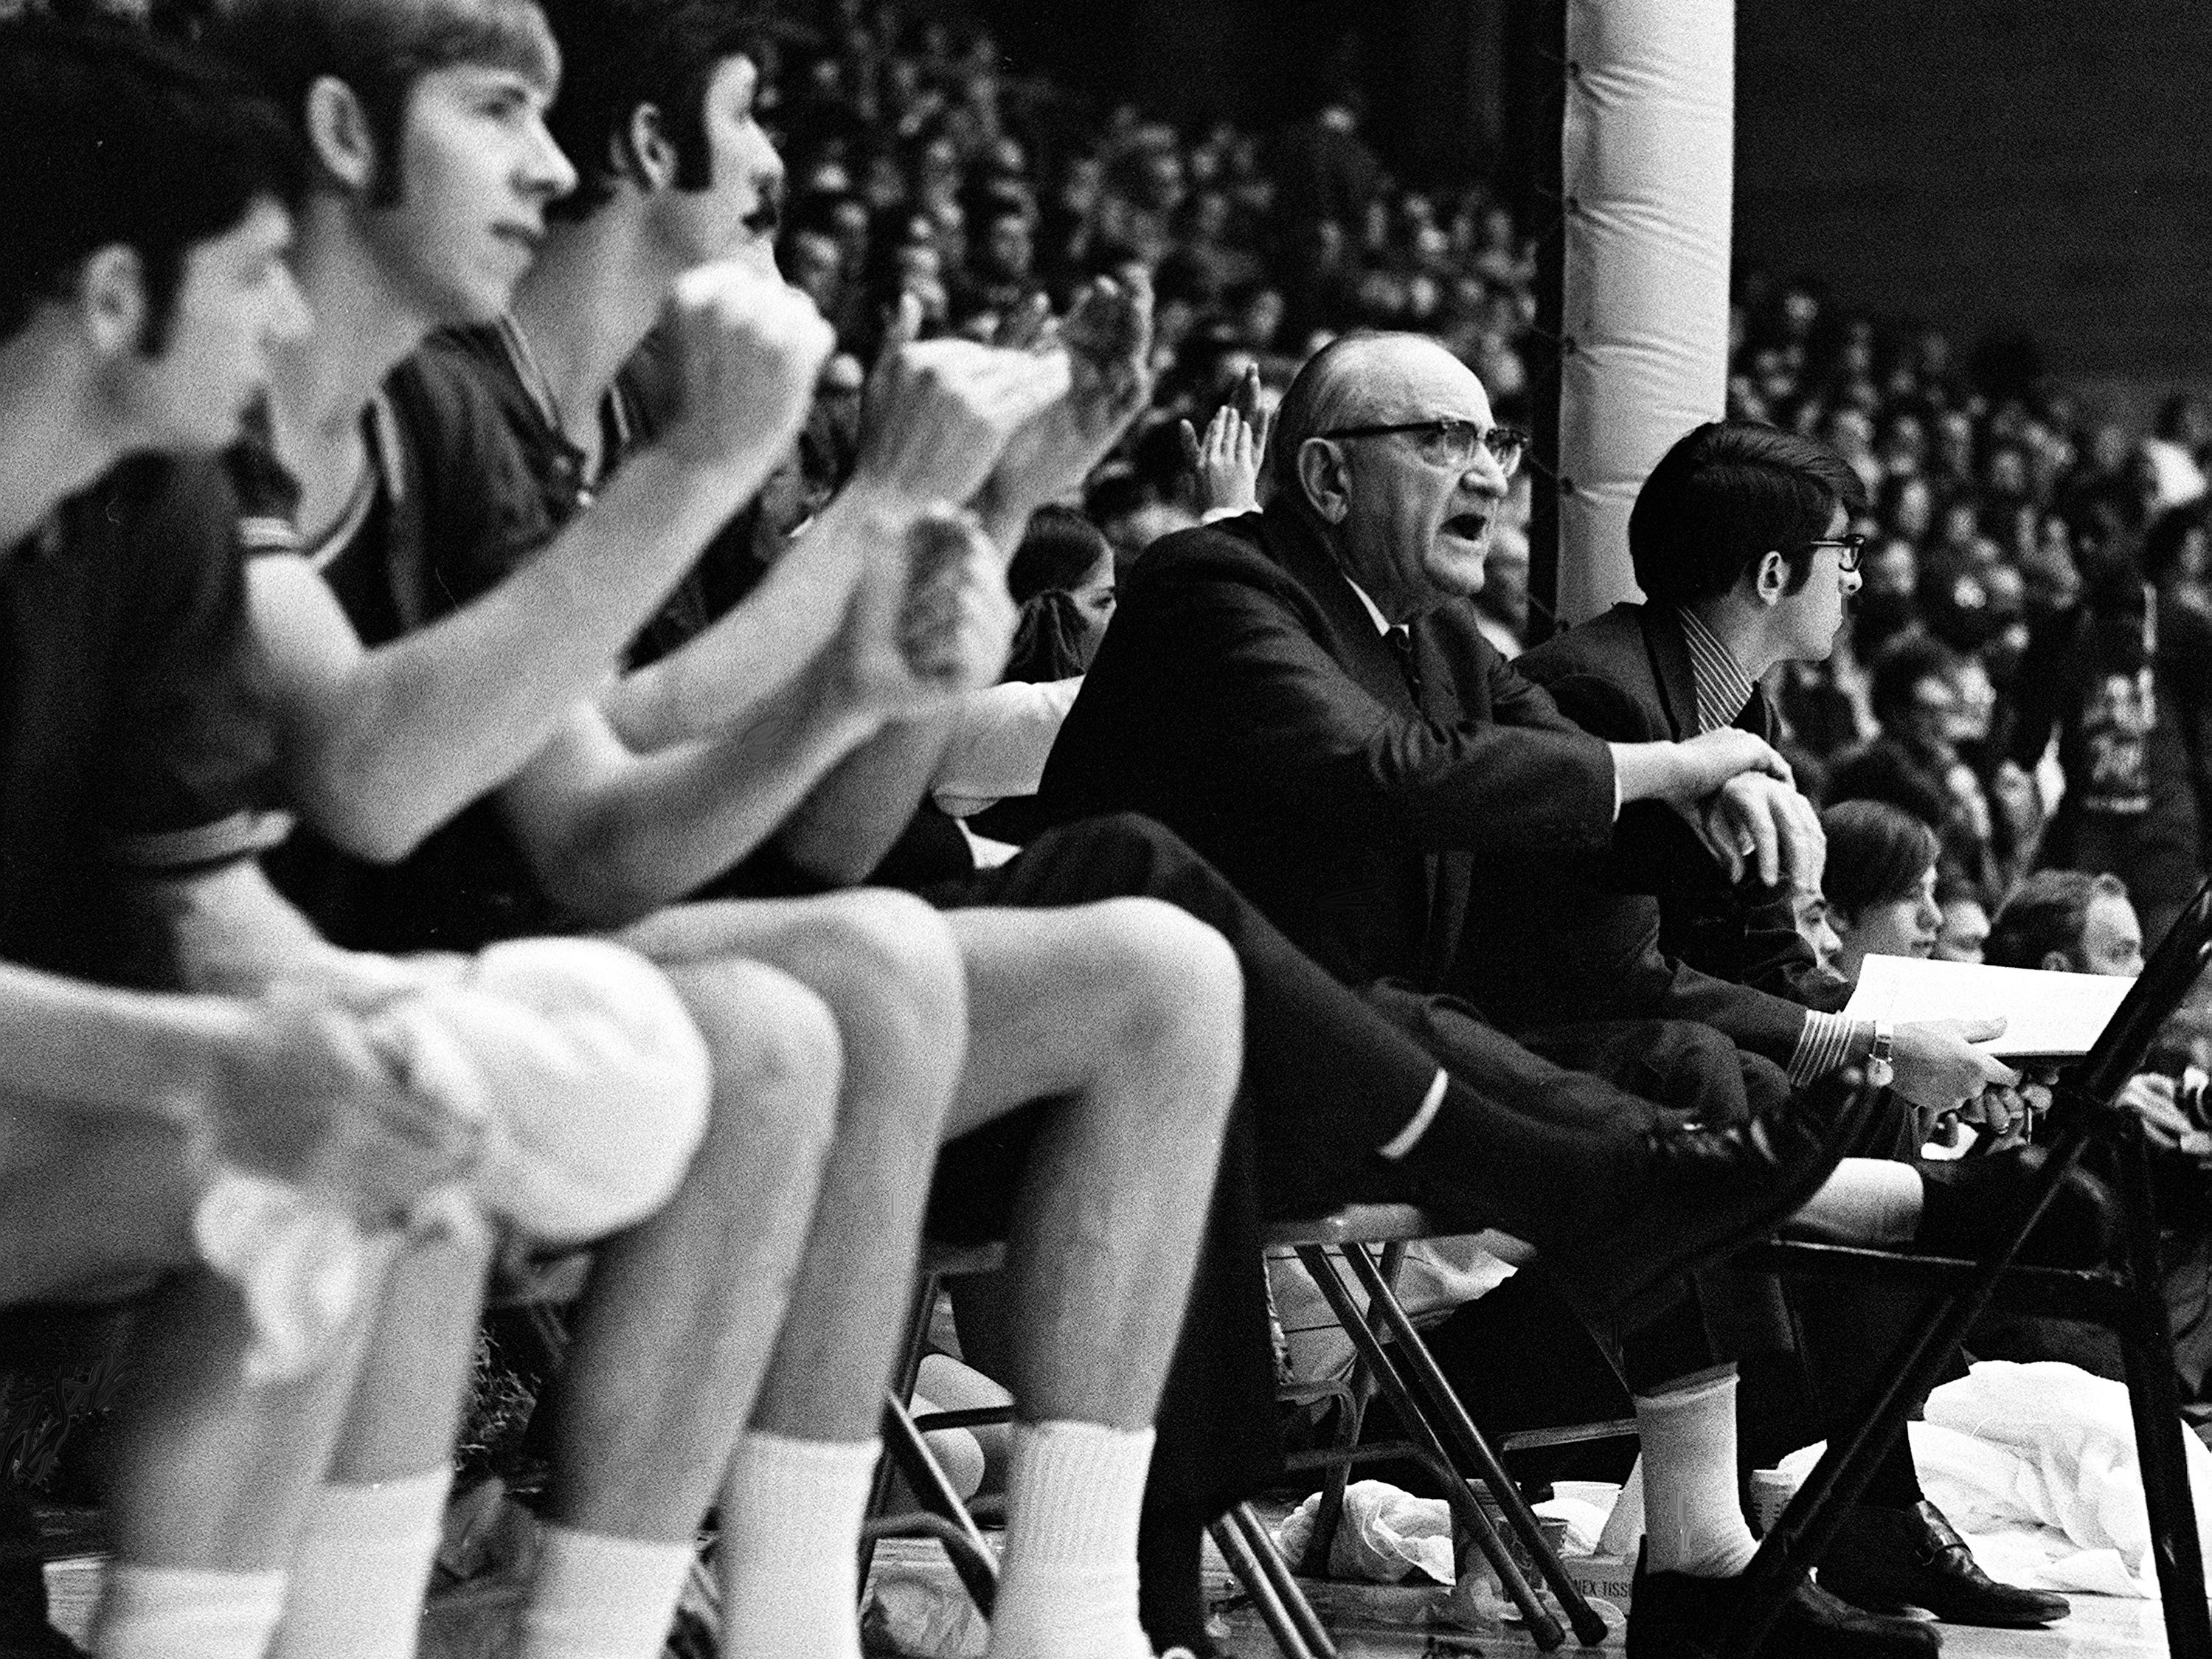 Kentucky ailing head coach Adolph Rupp, second from right, with his bad foot on a chair, watch his assistant coach Joe B. Hall lead the team against Vanderbilt Feb. 27, 1971. Rupp left a Lexington's hospital for a flight to Nashville accompanied by his physician. The Wildcats tagged the Commodores with its most lopsided loss in seven years, 119-90 before 15,581 fans at Memorial Gym.